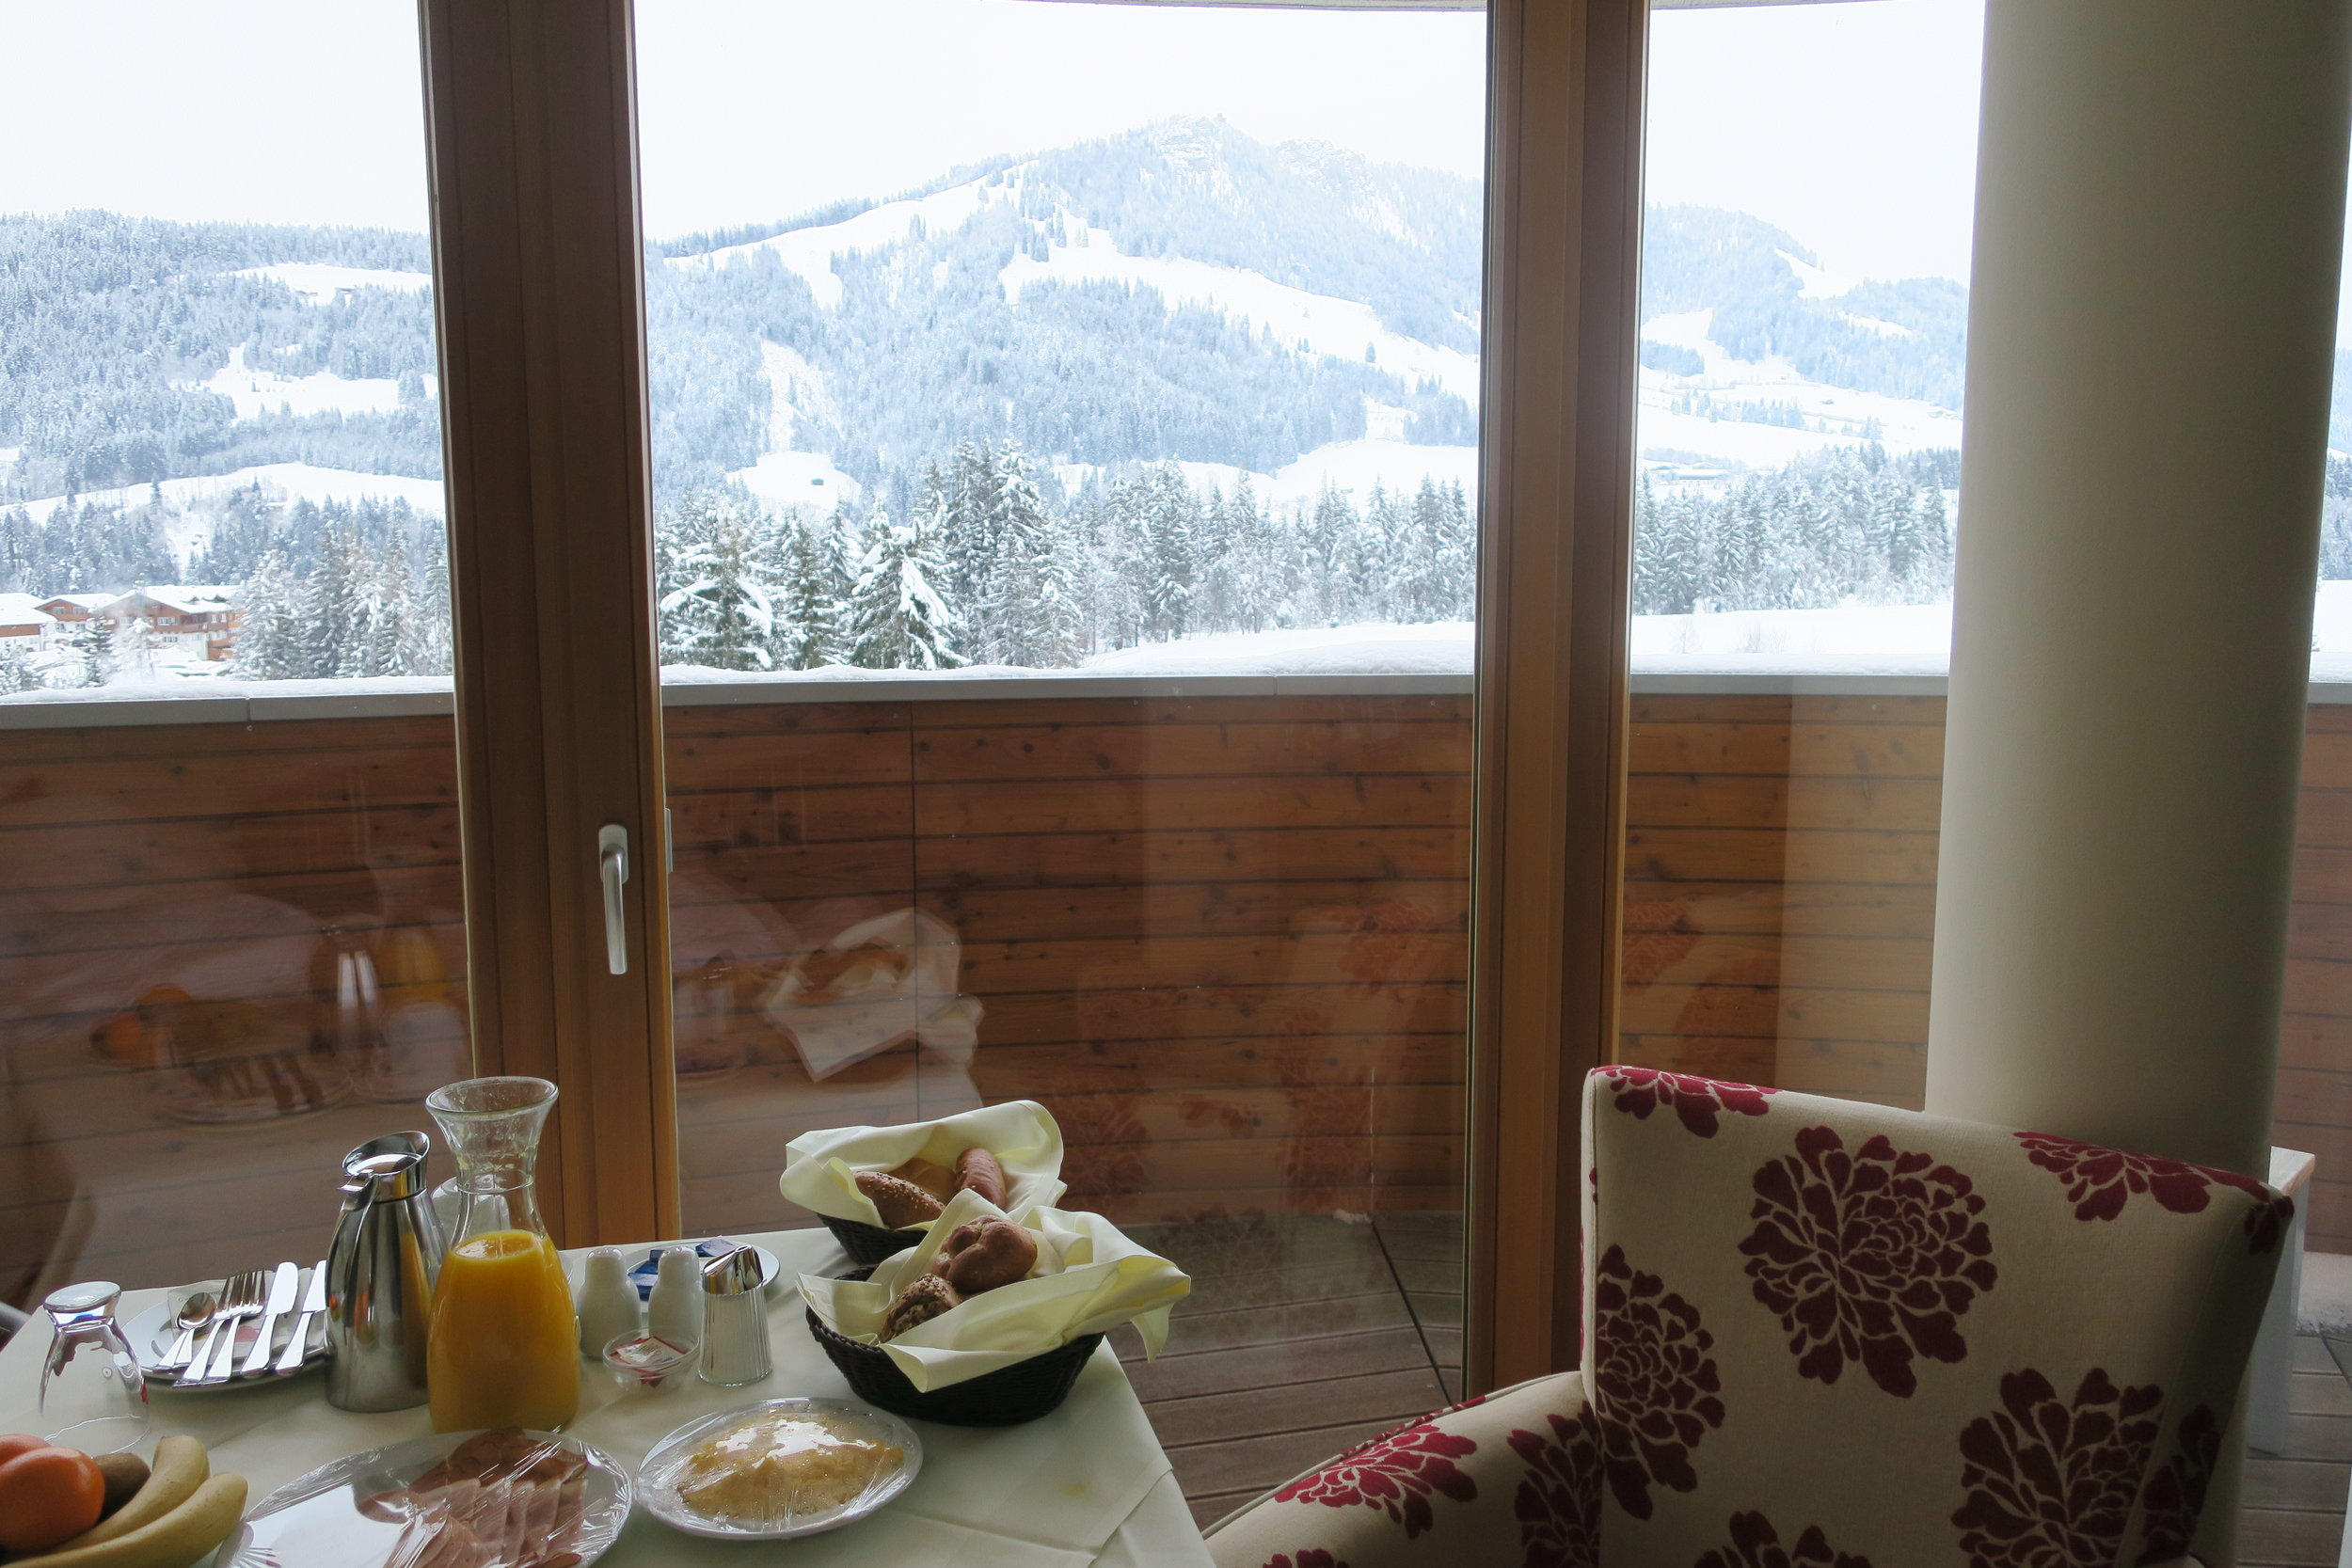 Breakfast with a wow view